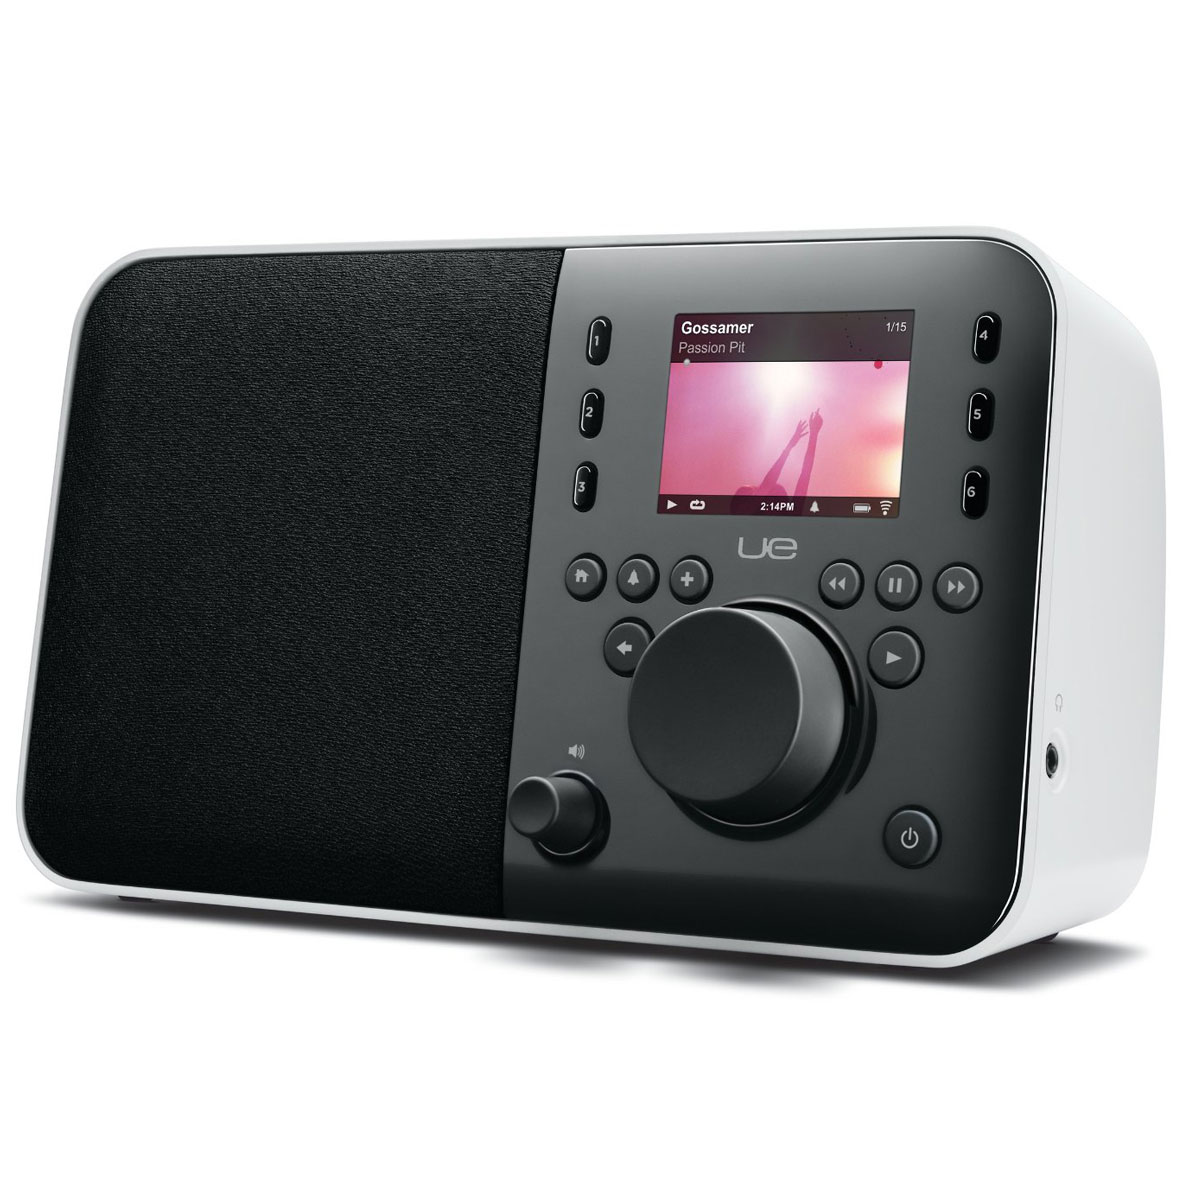 logitech ue smart radio blanc radio radio r veil logitech sur. Black Bedroom Furniture Sets. Home Design Ideas